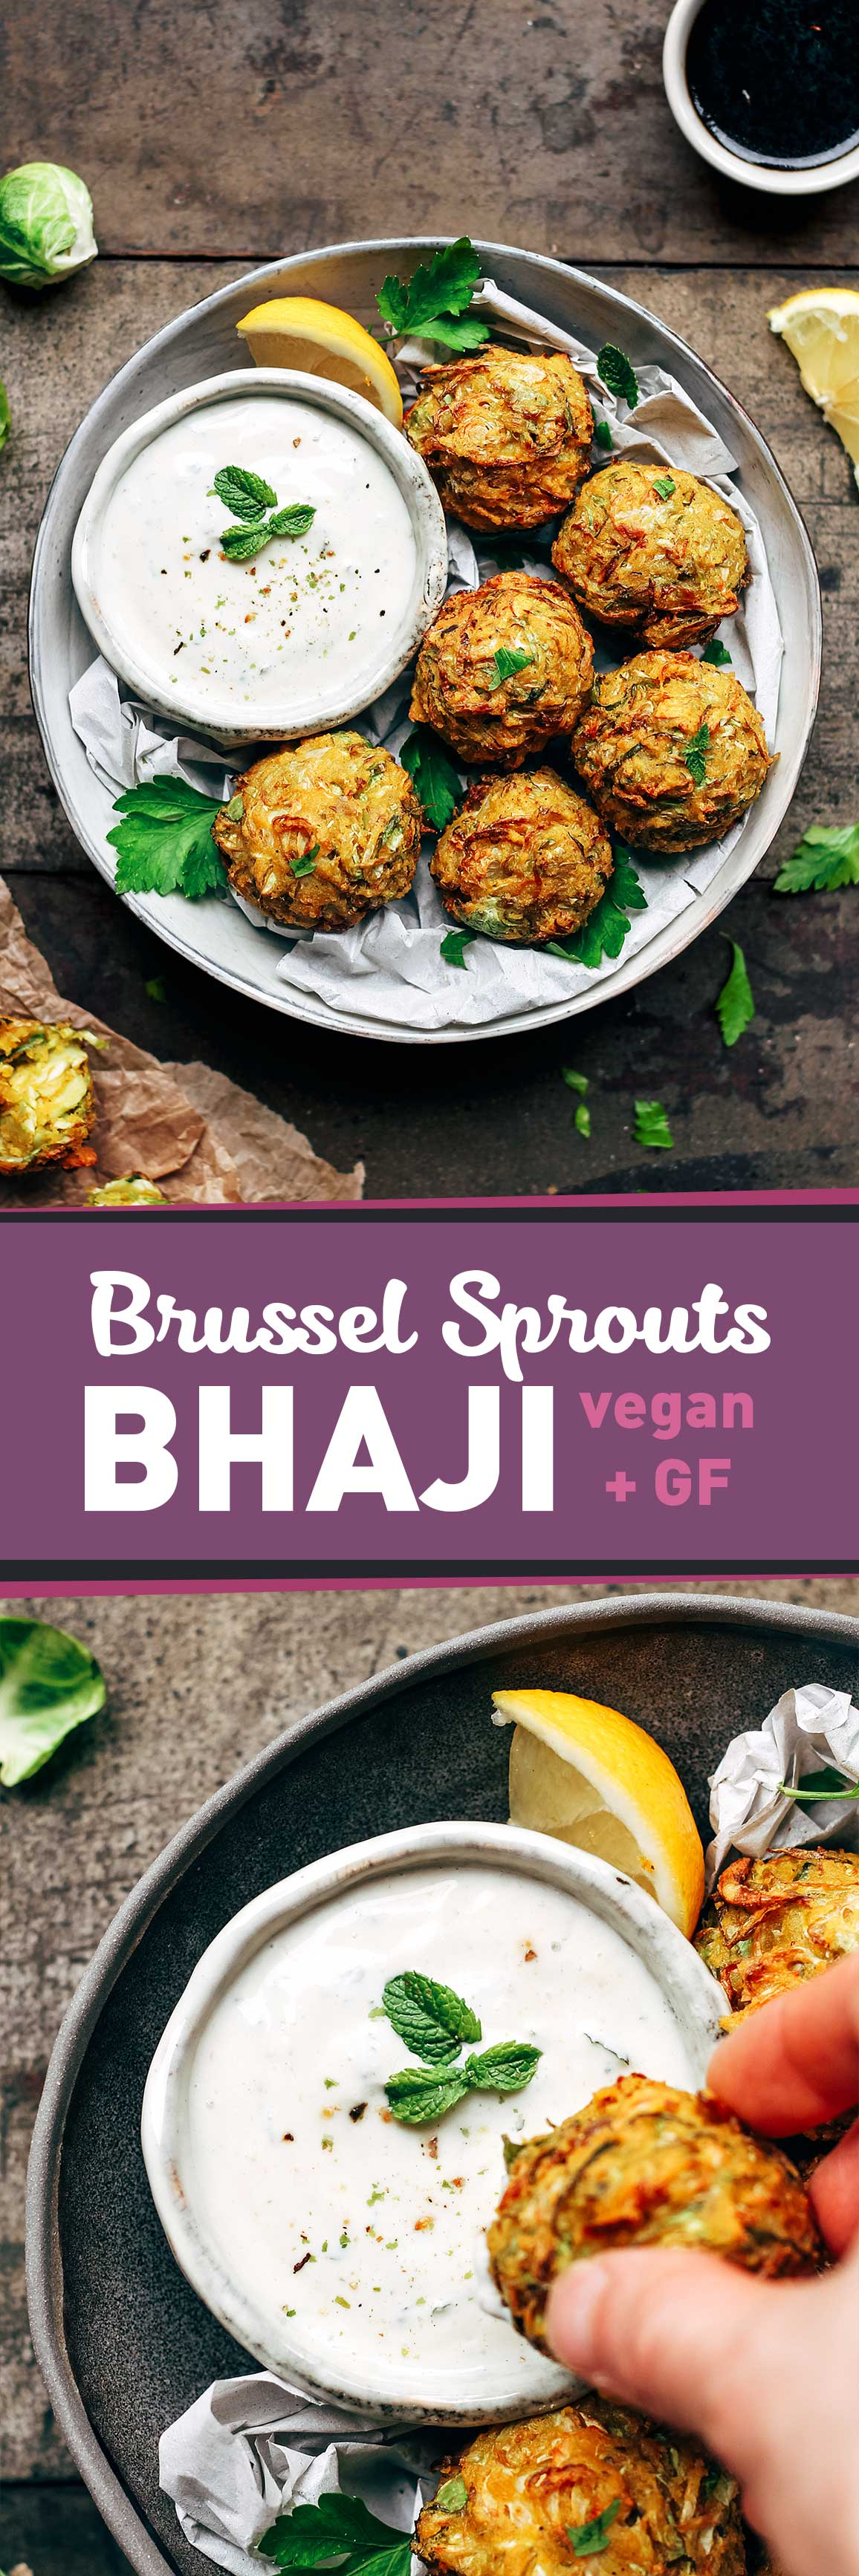 Brussel Sprouts Bhaji